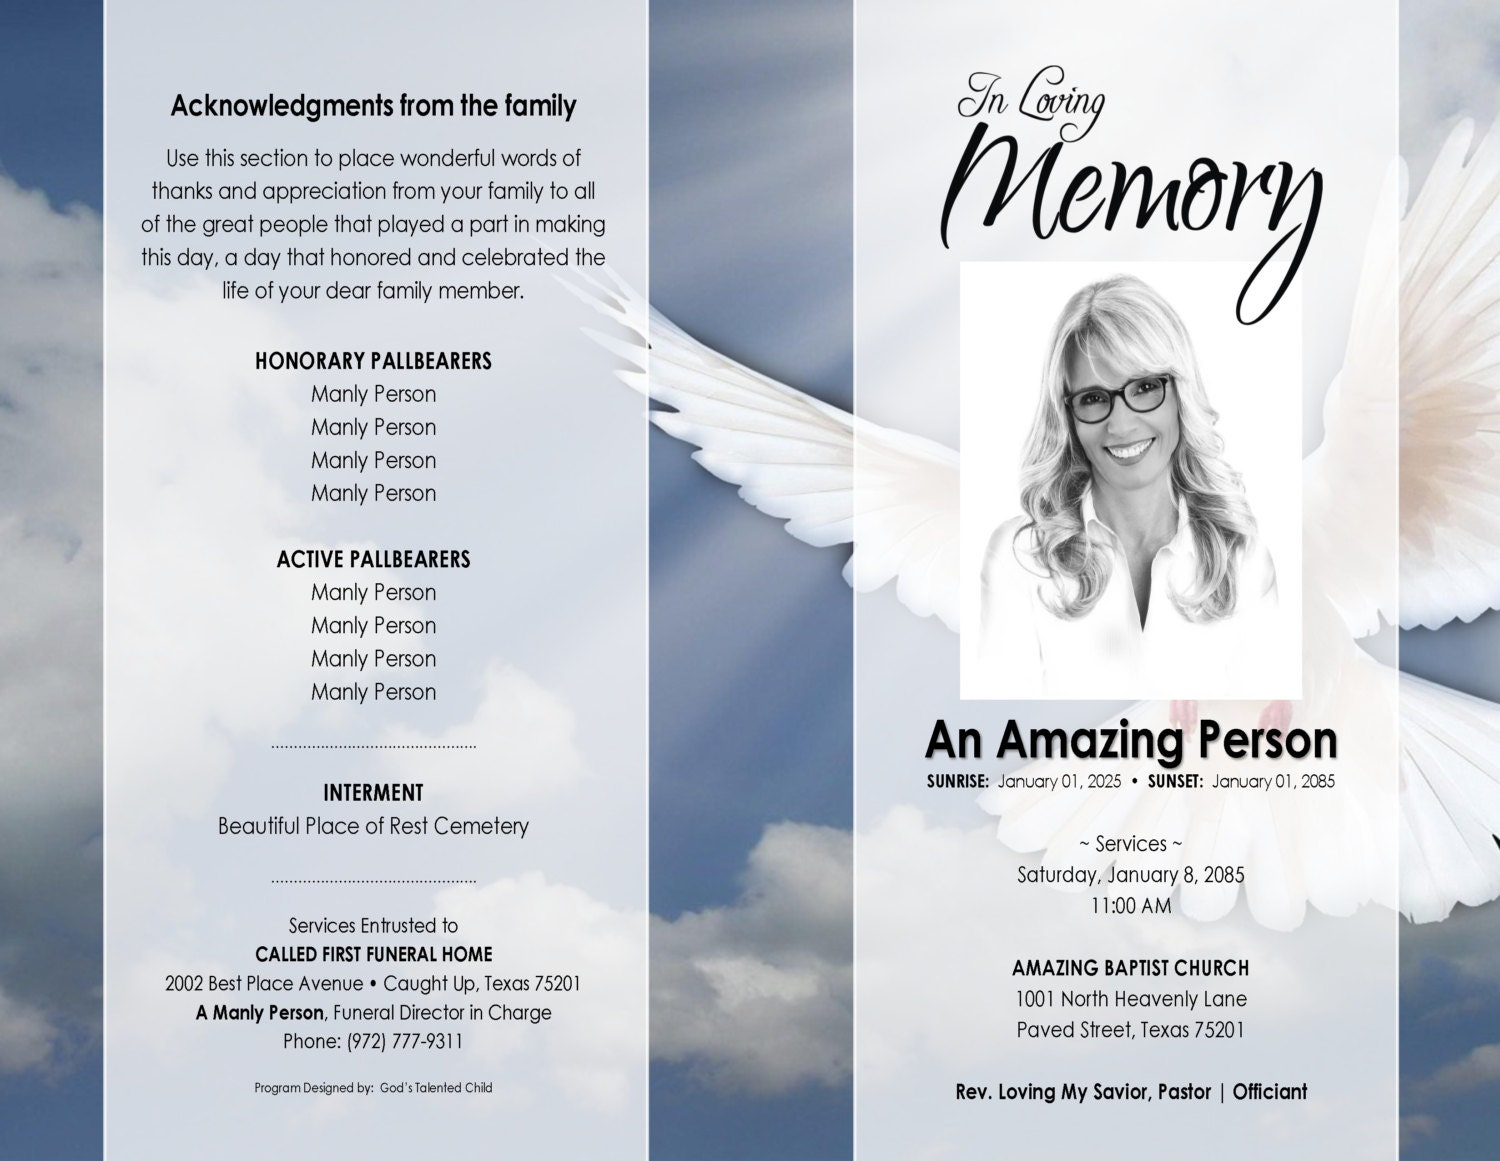 Free Printable Obituary Program Template Dance Studio Manager Il Fullxfull  Free Printable Obituary Program Templatehtml  Free Obituary Program Template